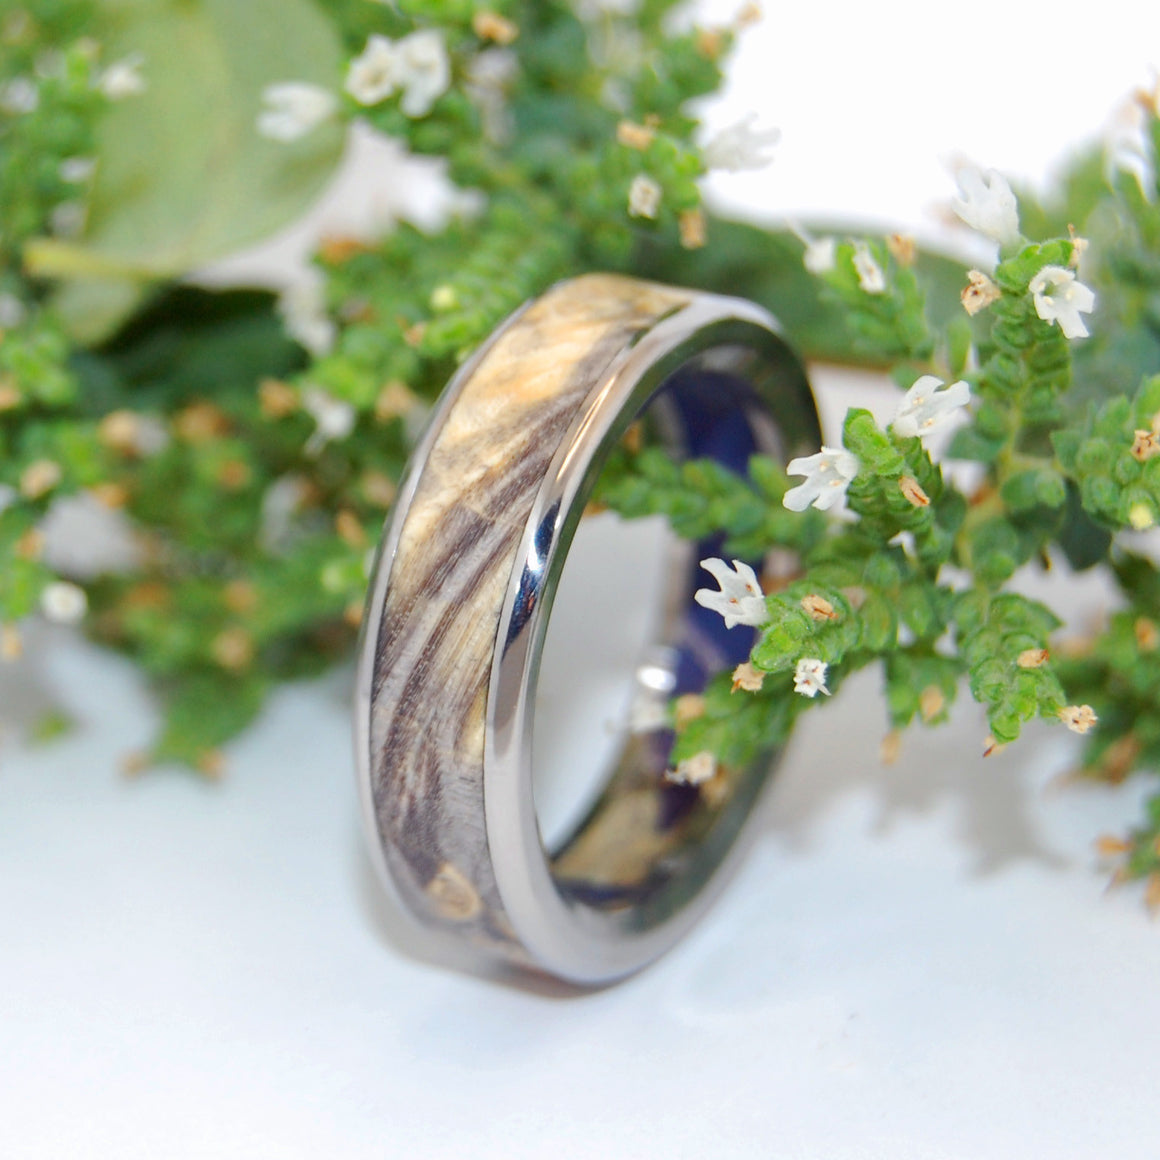 My Eyes in Your Direction | Handcrafted Wooden Wedding Ring